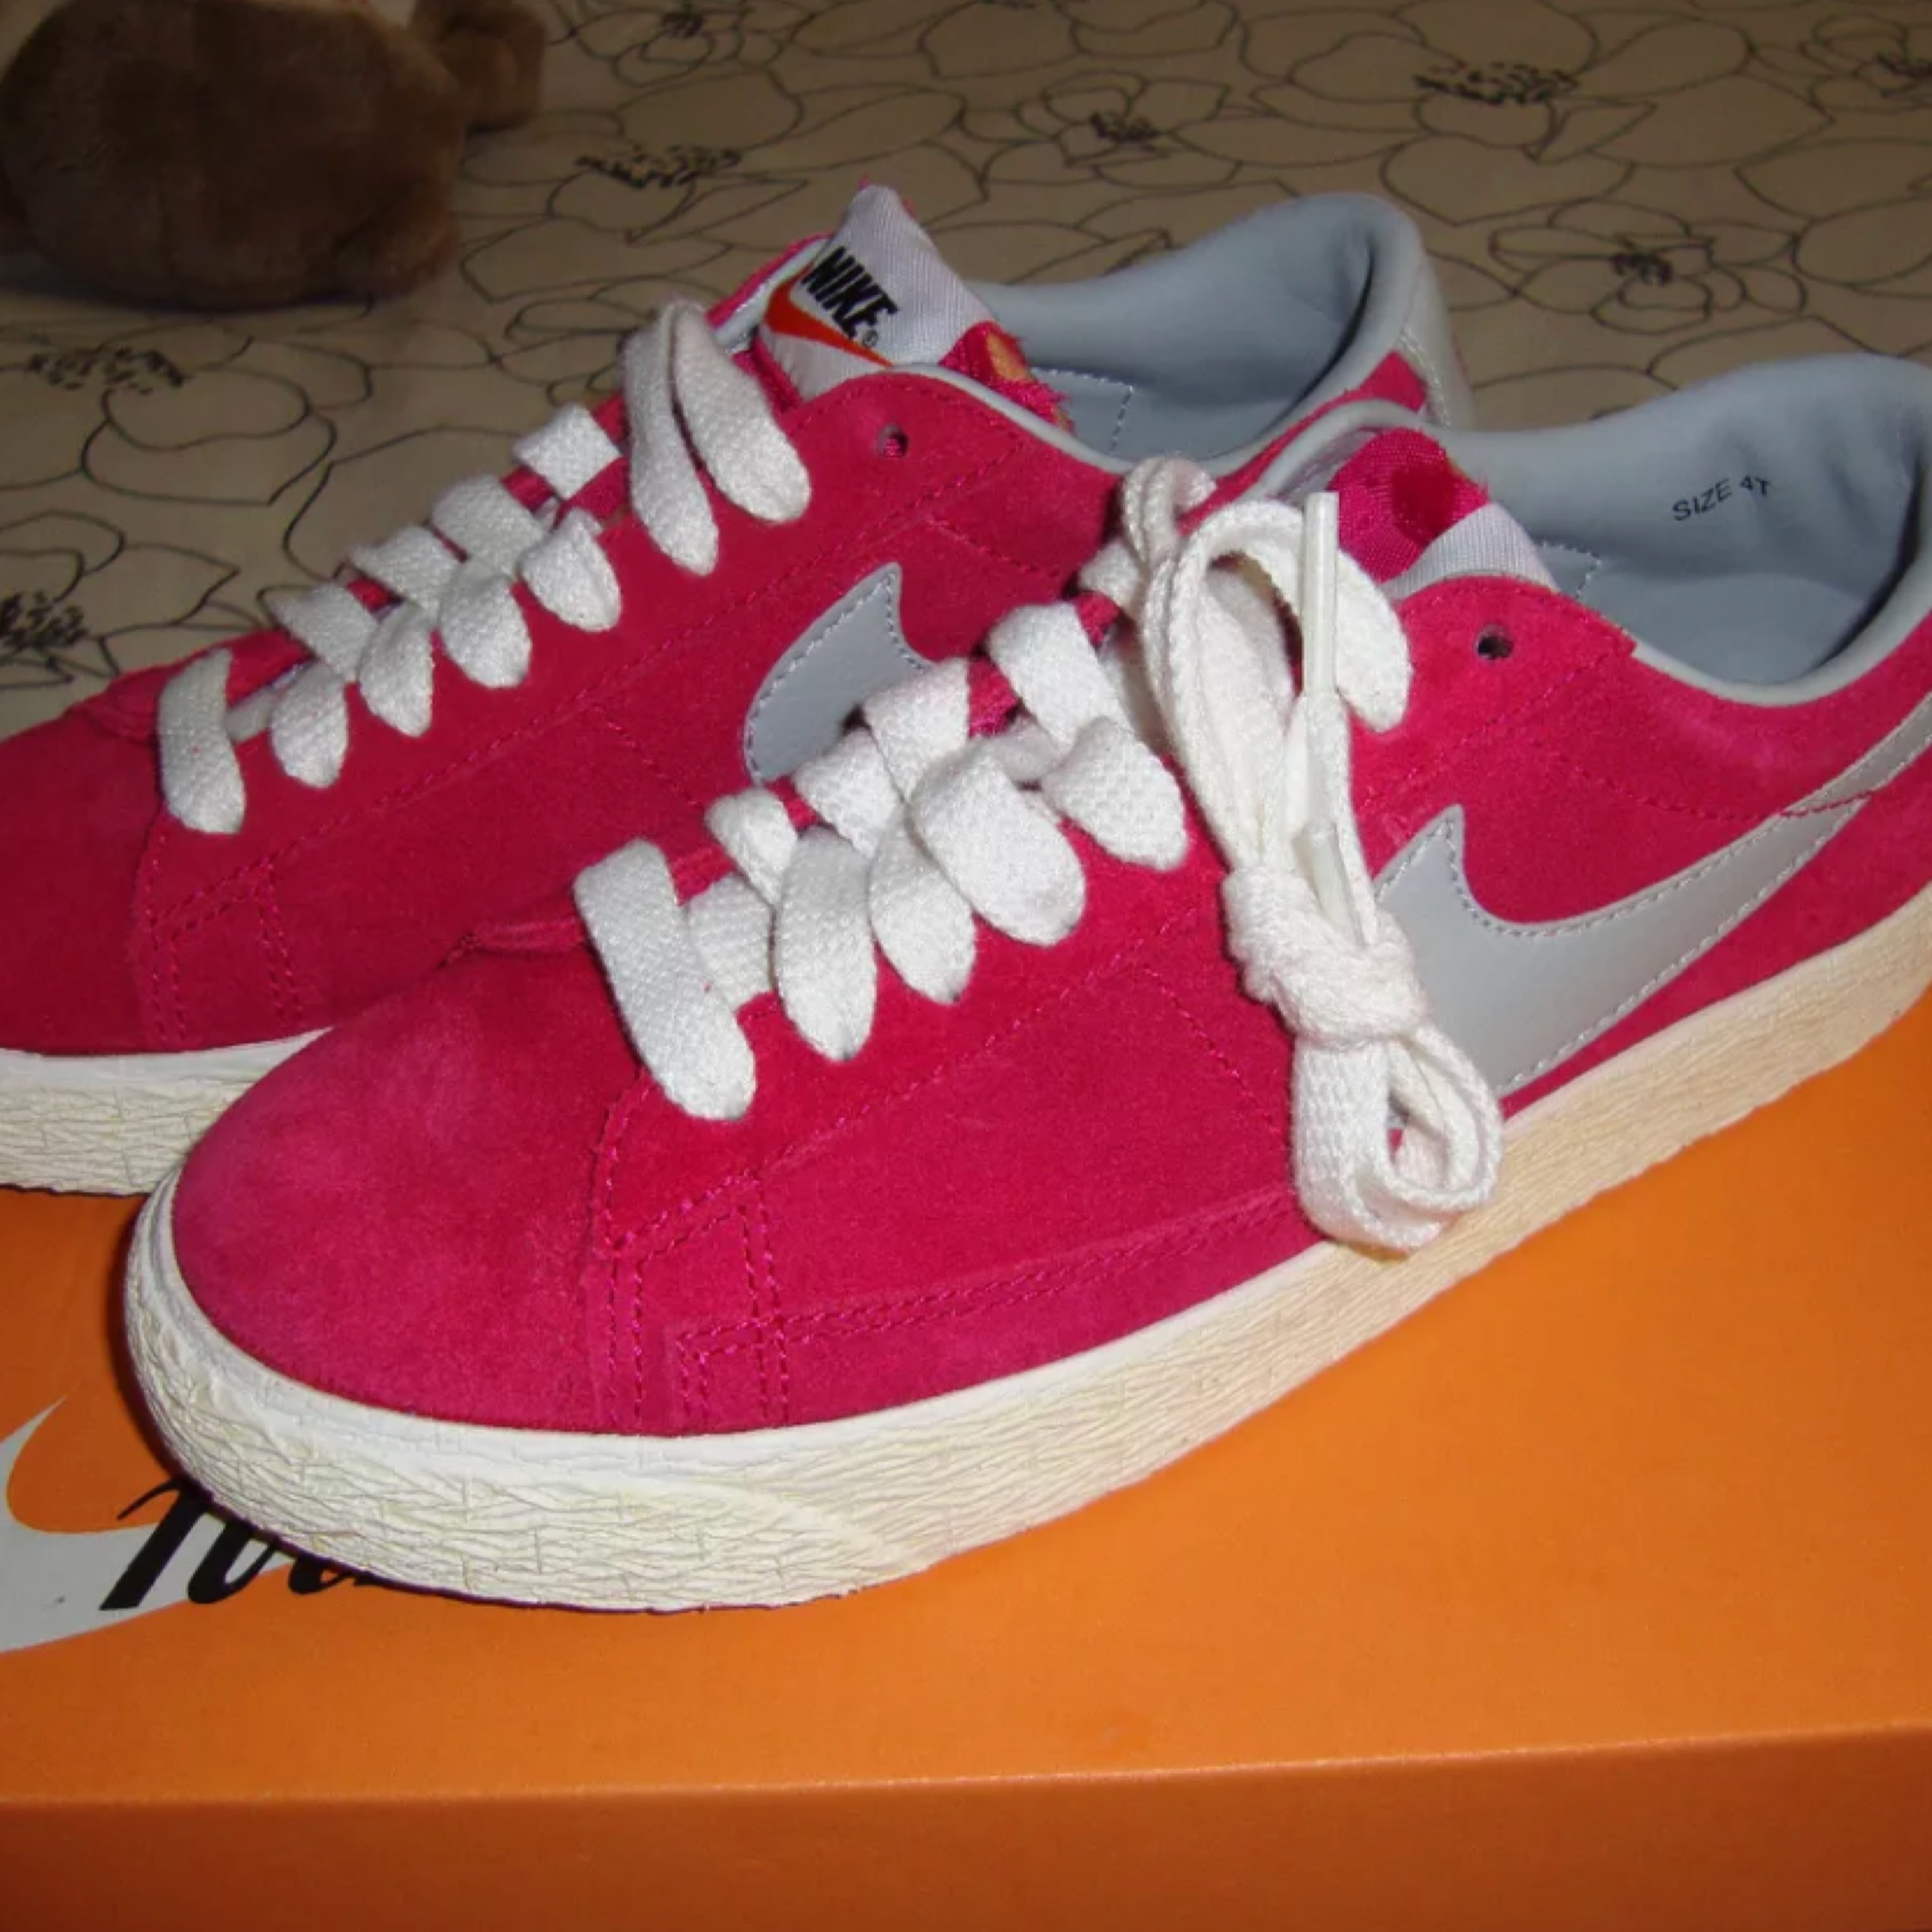 Nike Blazer Low Prm Vintage Suede Sneakers New